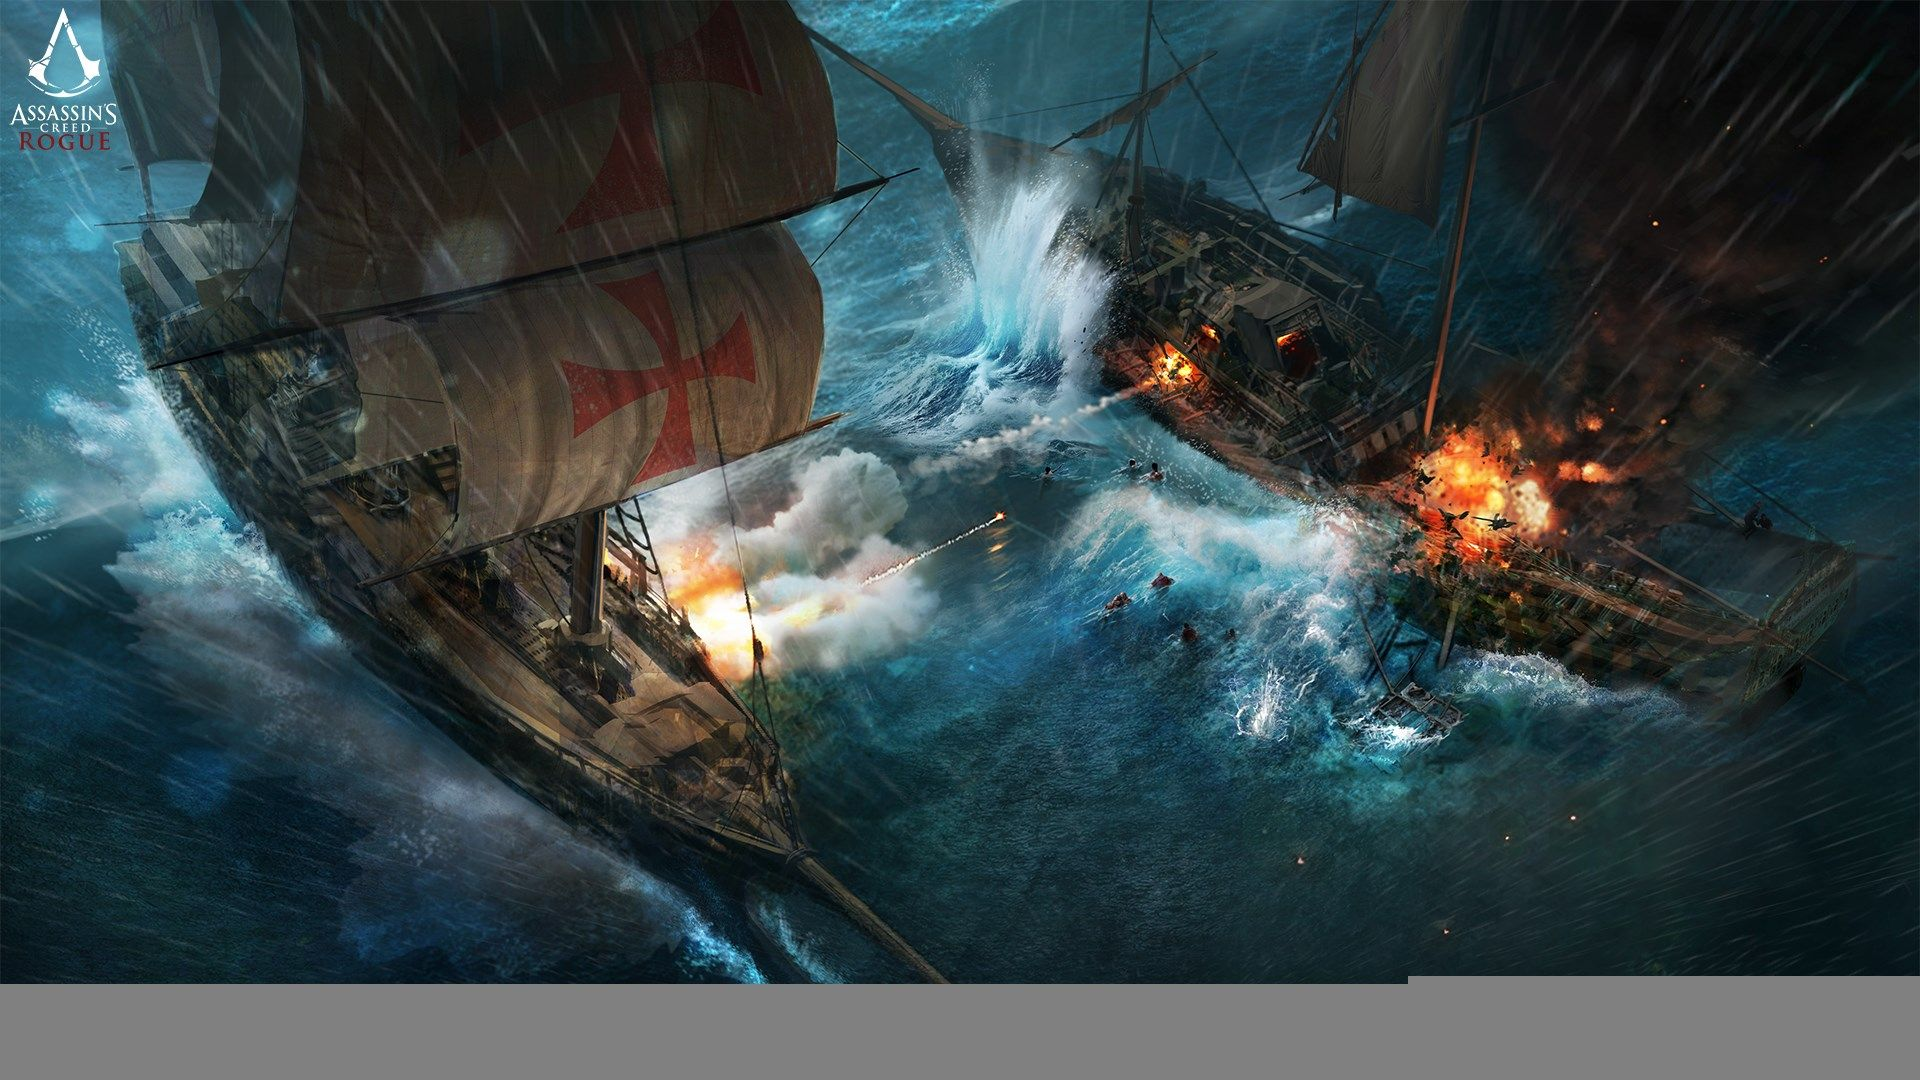 1920x1080 Px Assassins Creed Rogue Wallpaper Full Hd Pictures By